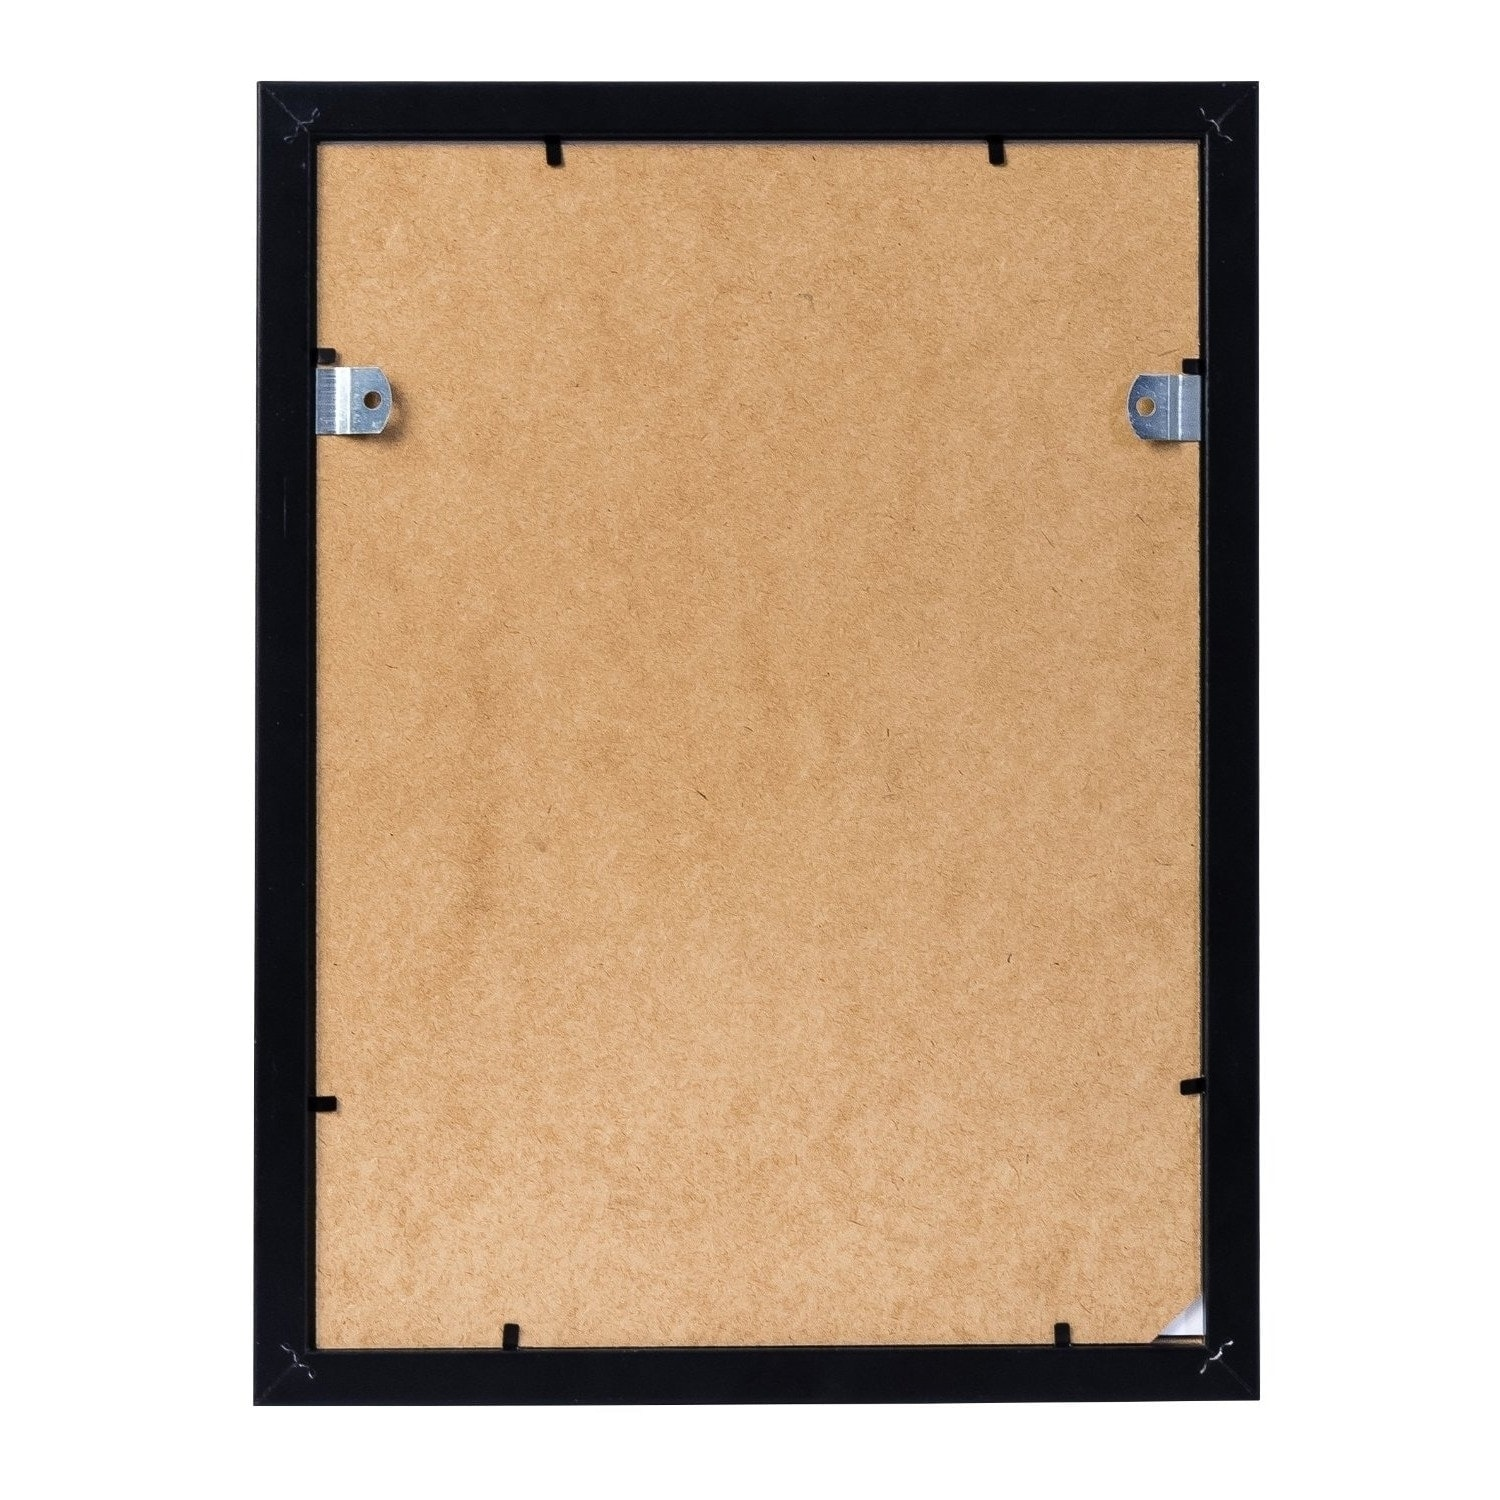 Shop 11 X 13 Inch Black Picture Frame With Hanging Hardware For 8 X